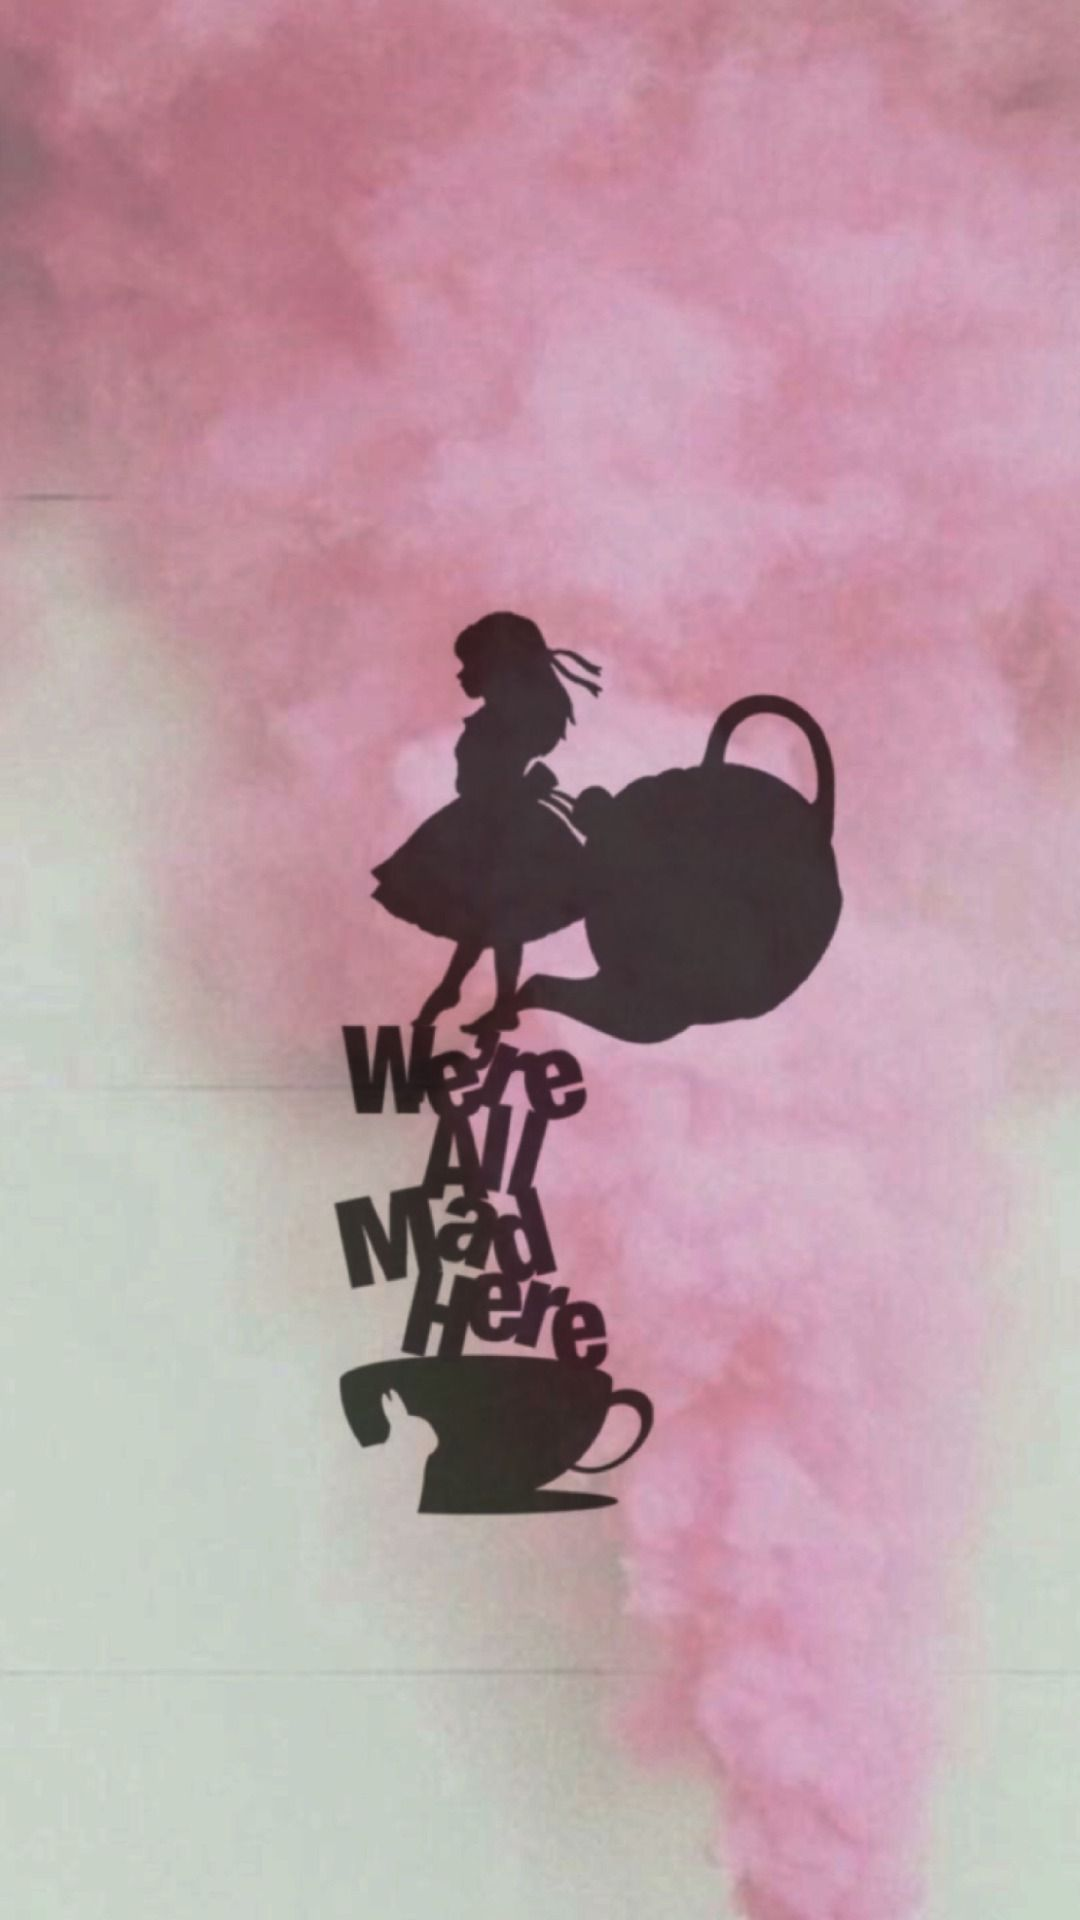 We're all mad here • lockscreens Alice in wonderland